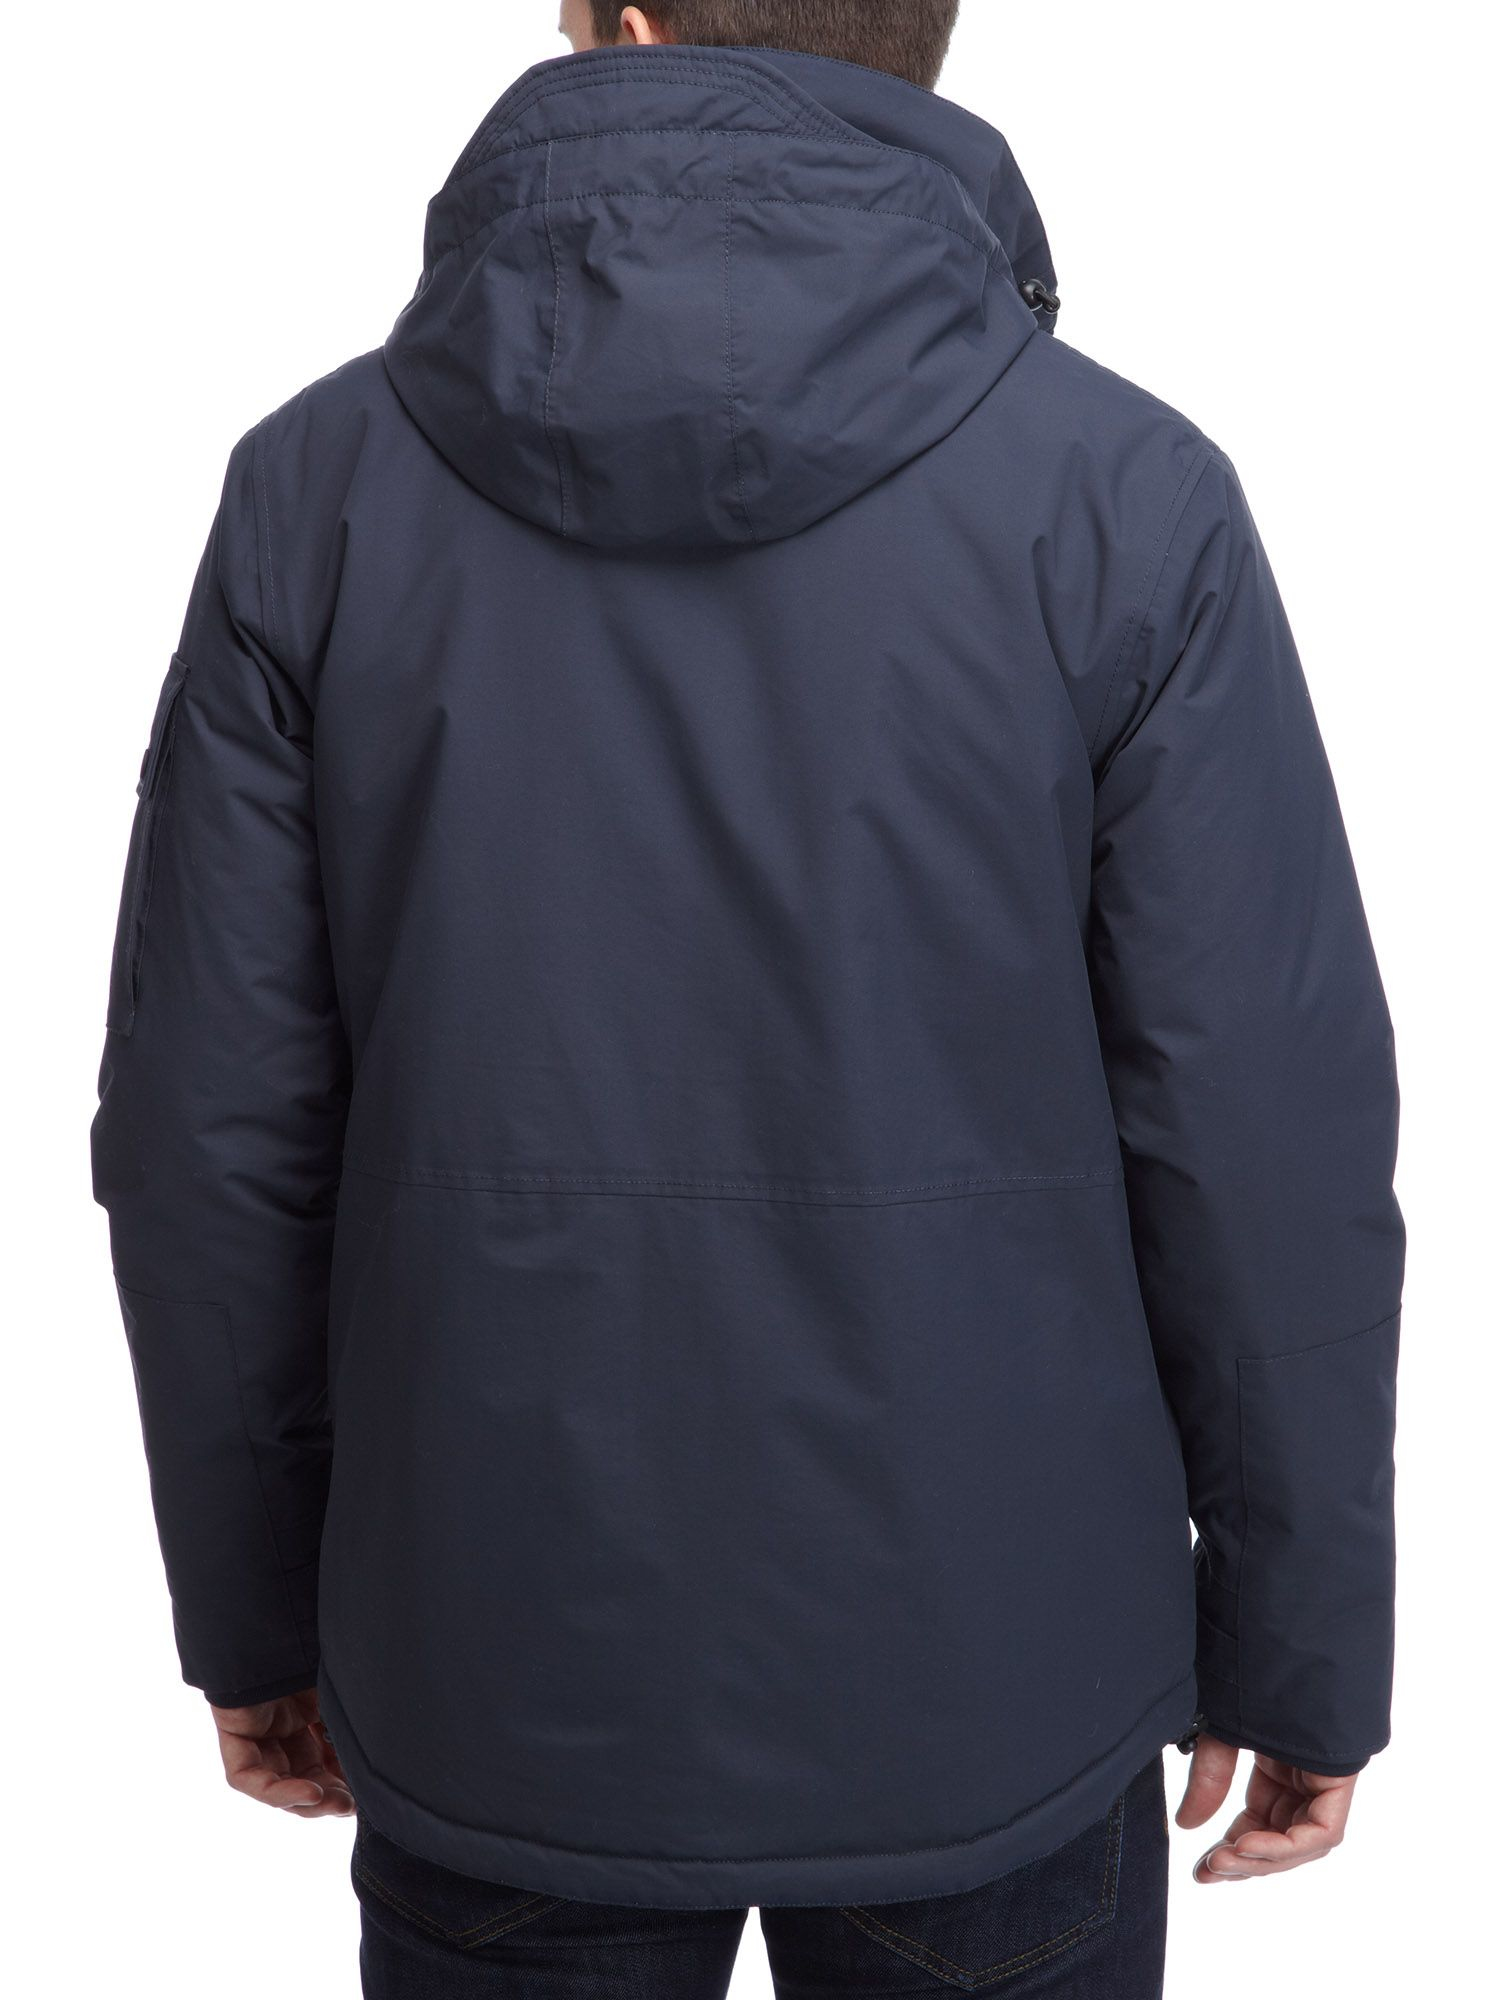 Henri lloyd Waterproof, Windproof Jacket in Blue for Men | Lyst